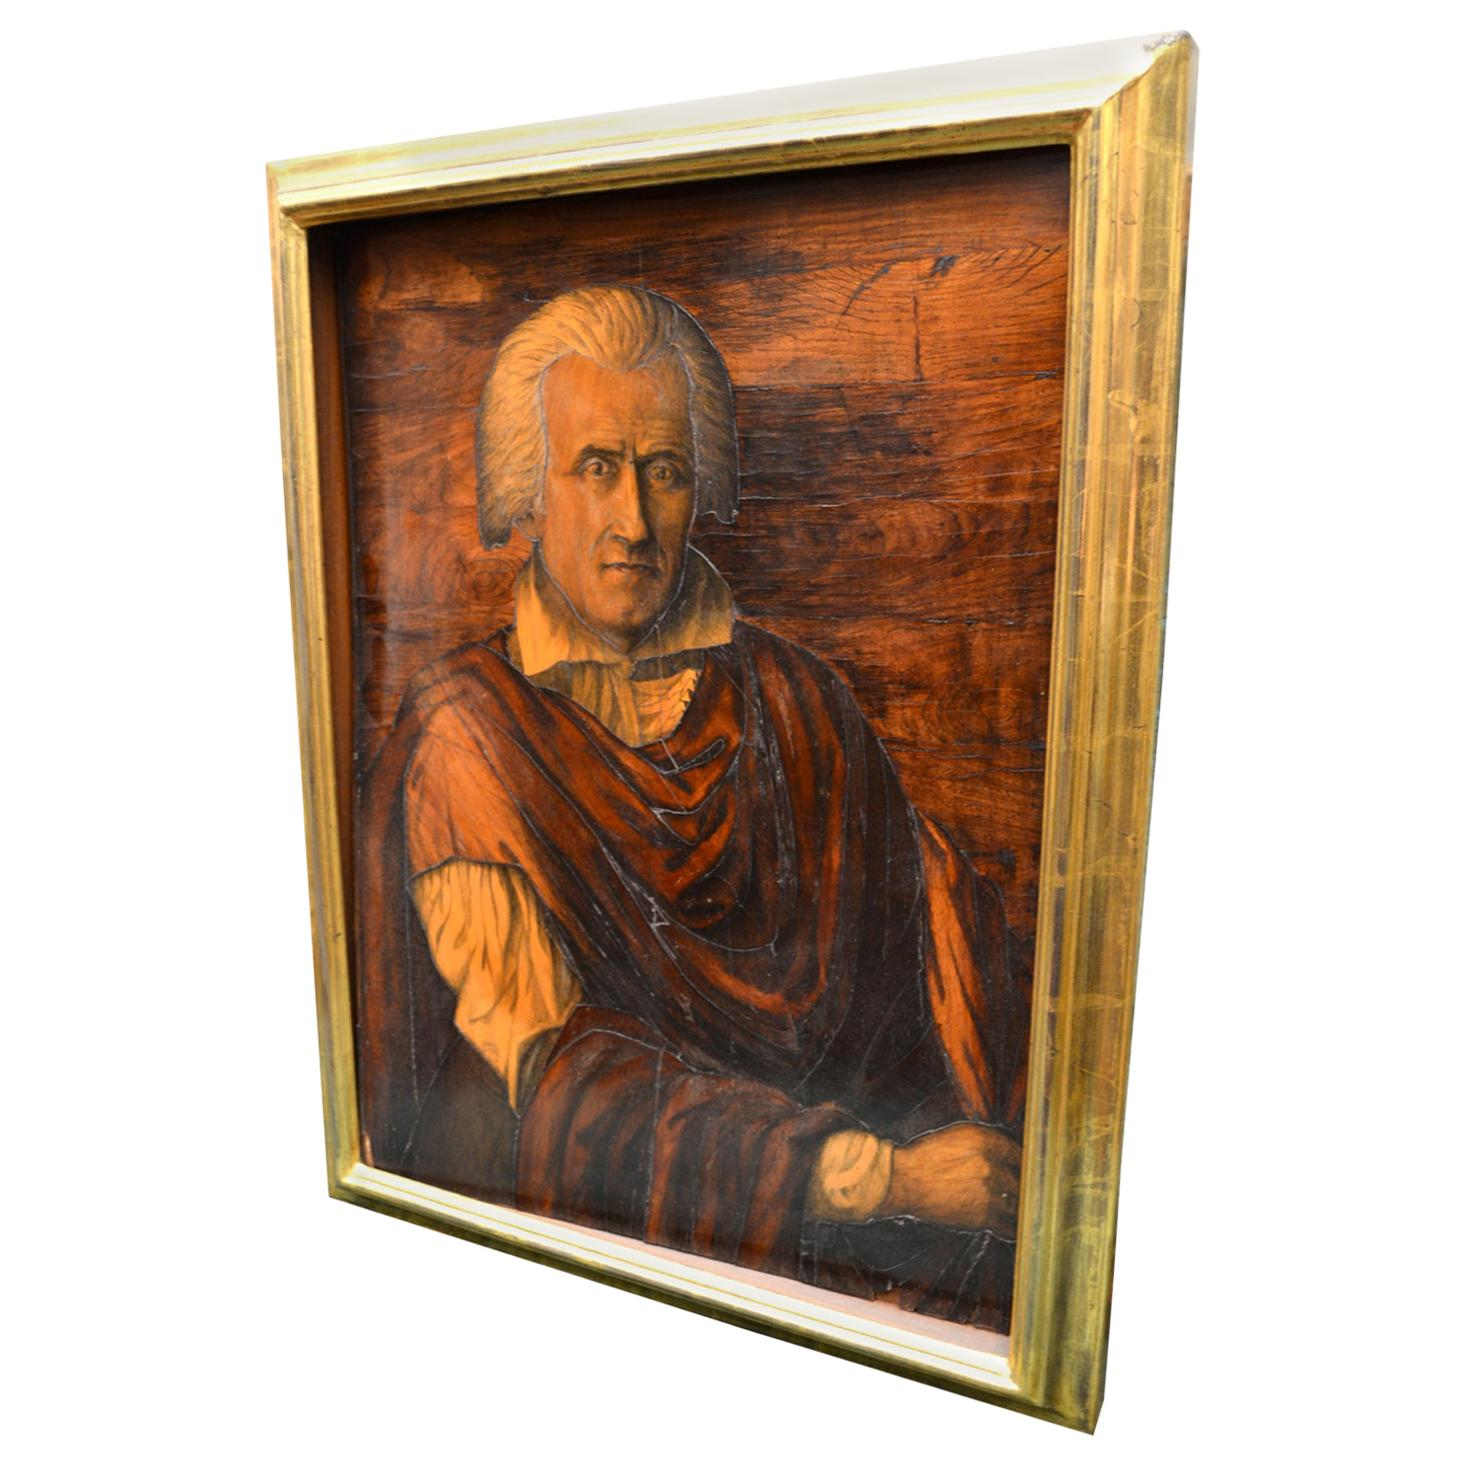 Portrait of Christopher Columbus All Made Lout of in Inlaid Woods